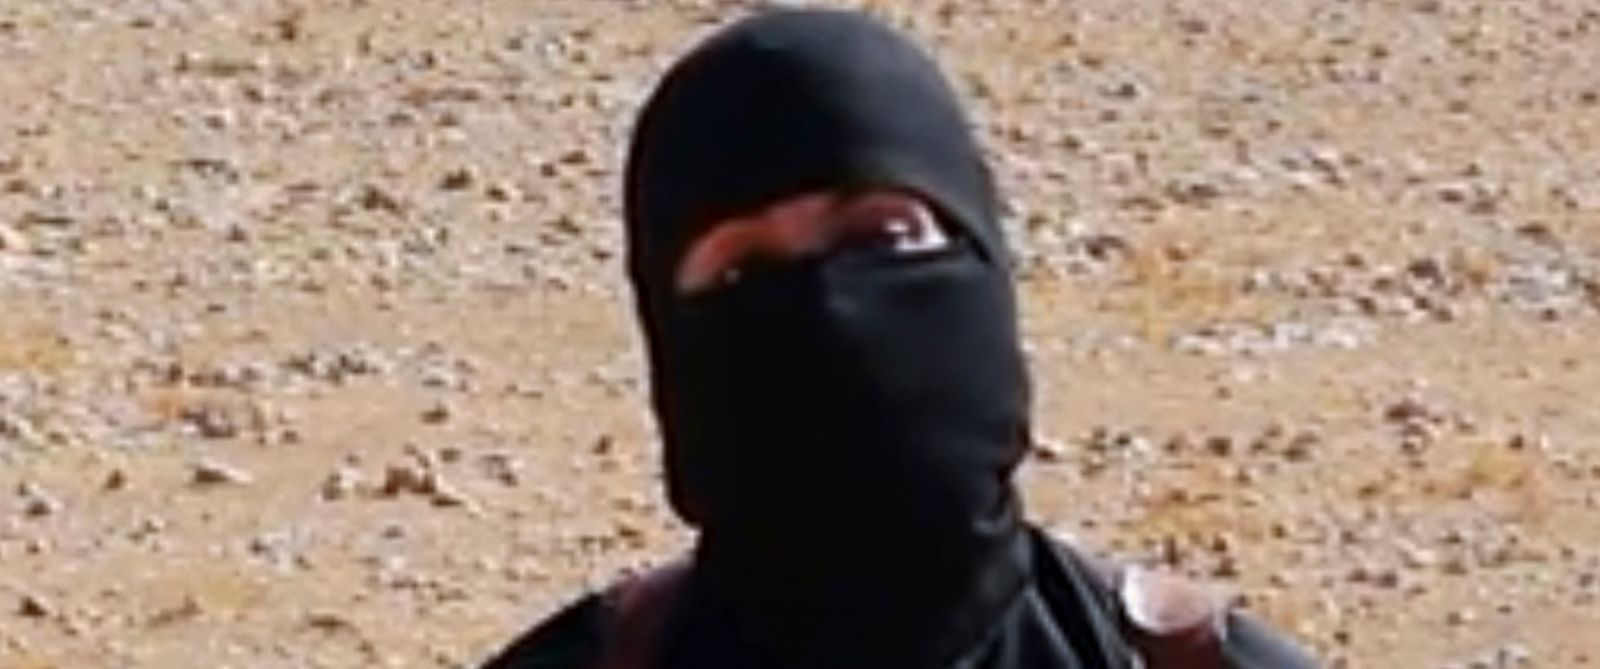 PHOTO: This still image from undated video released by Islamic State militants on Oct. 3, 2014, purports to show the militant known as Jihadi John.